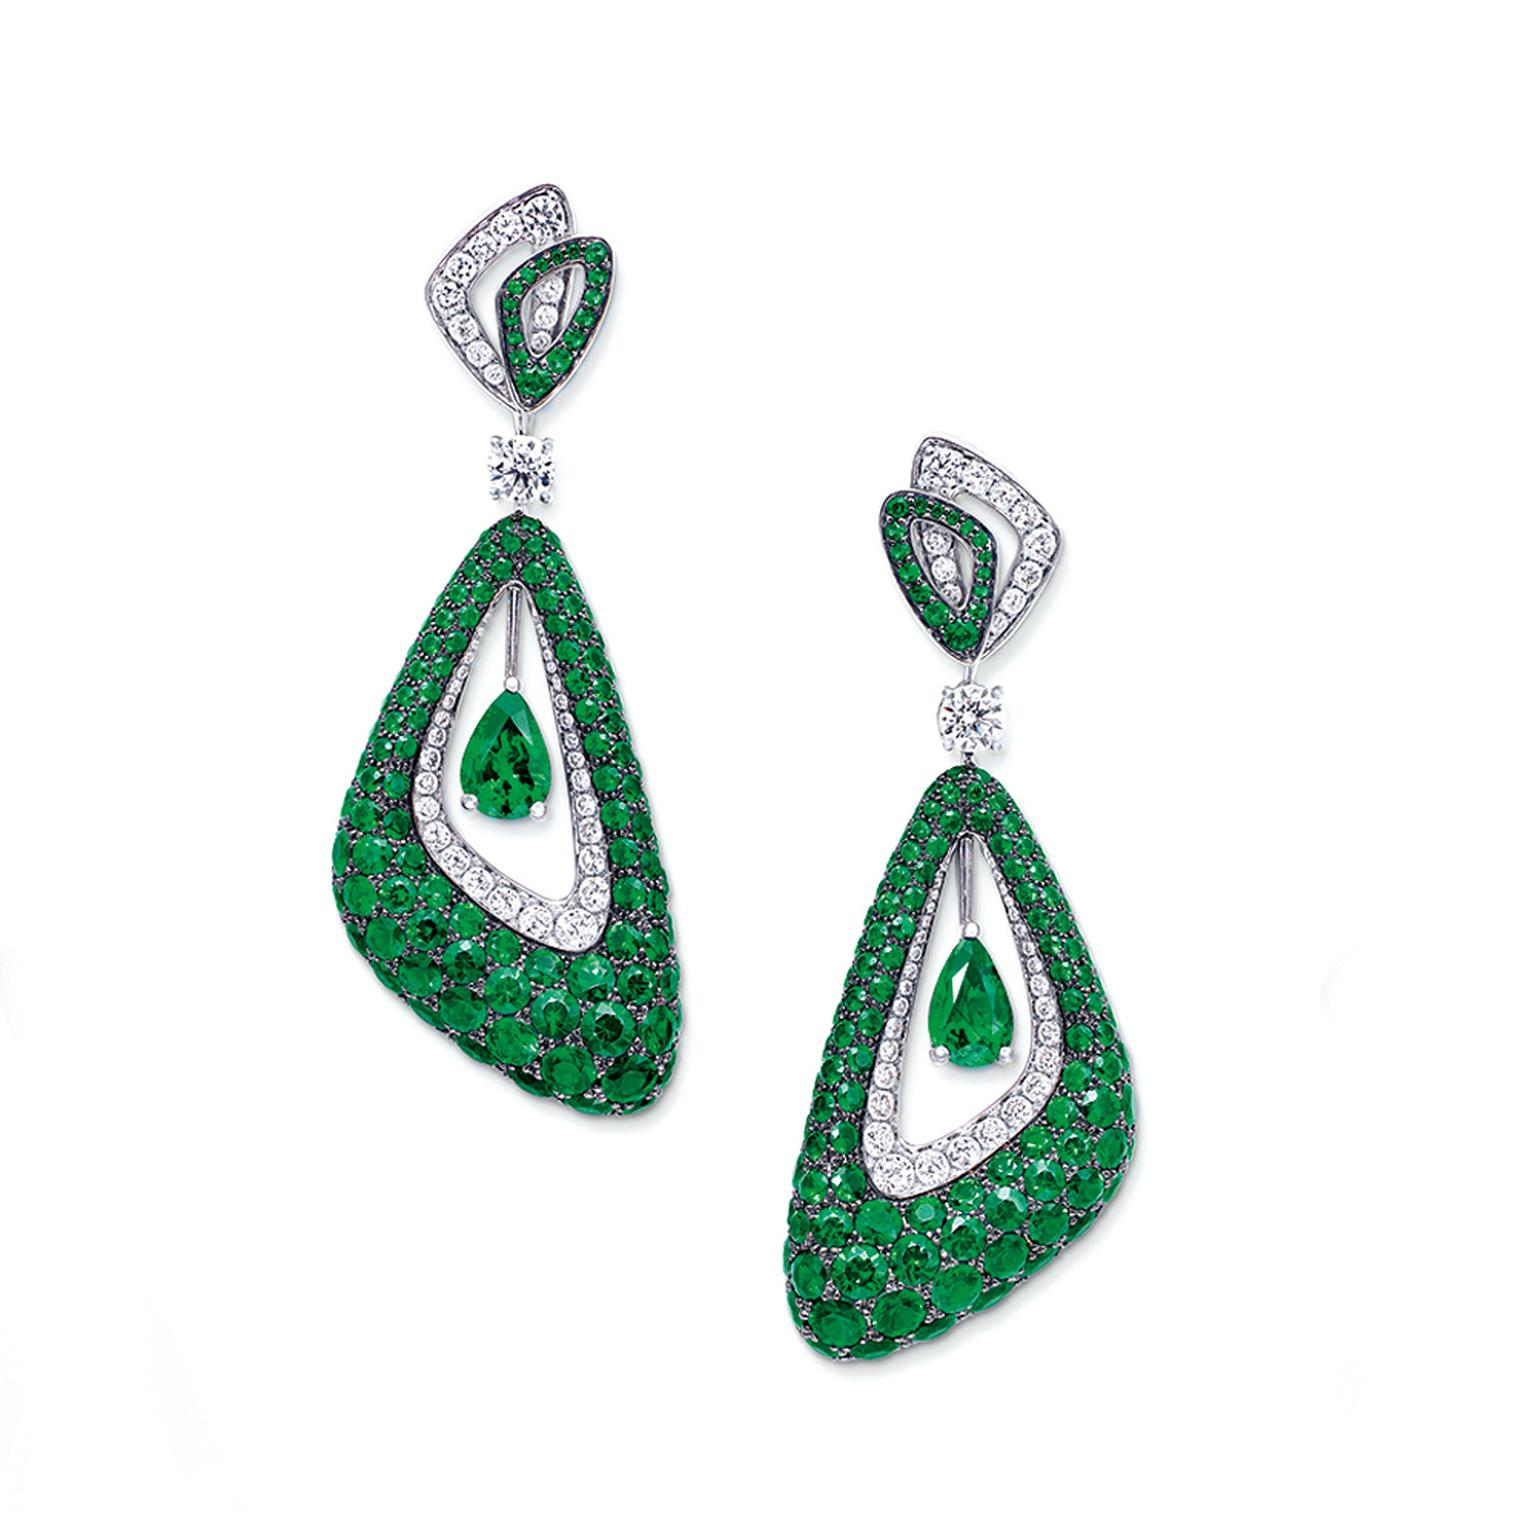 Graff Luna emerald earrings